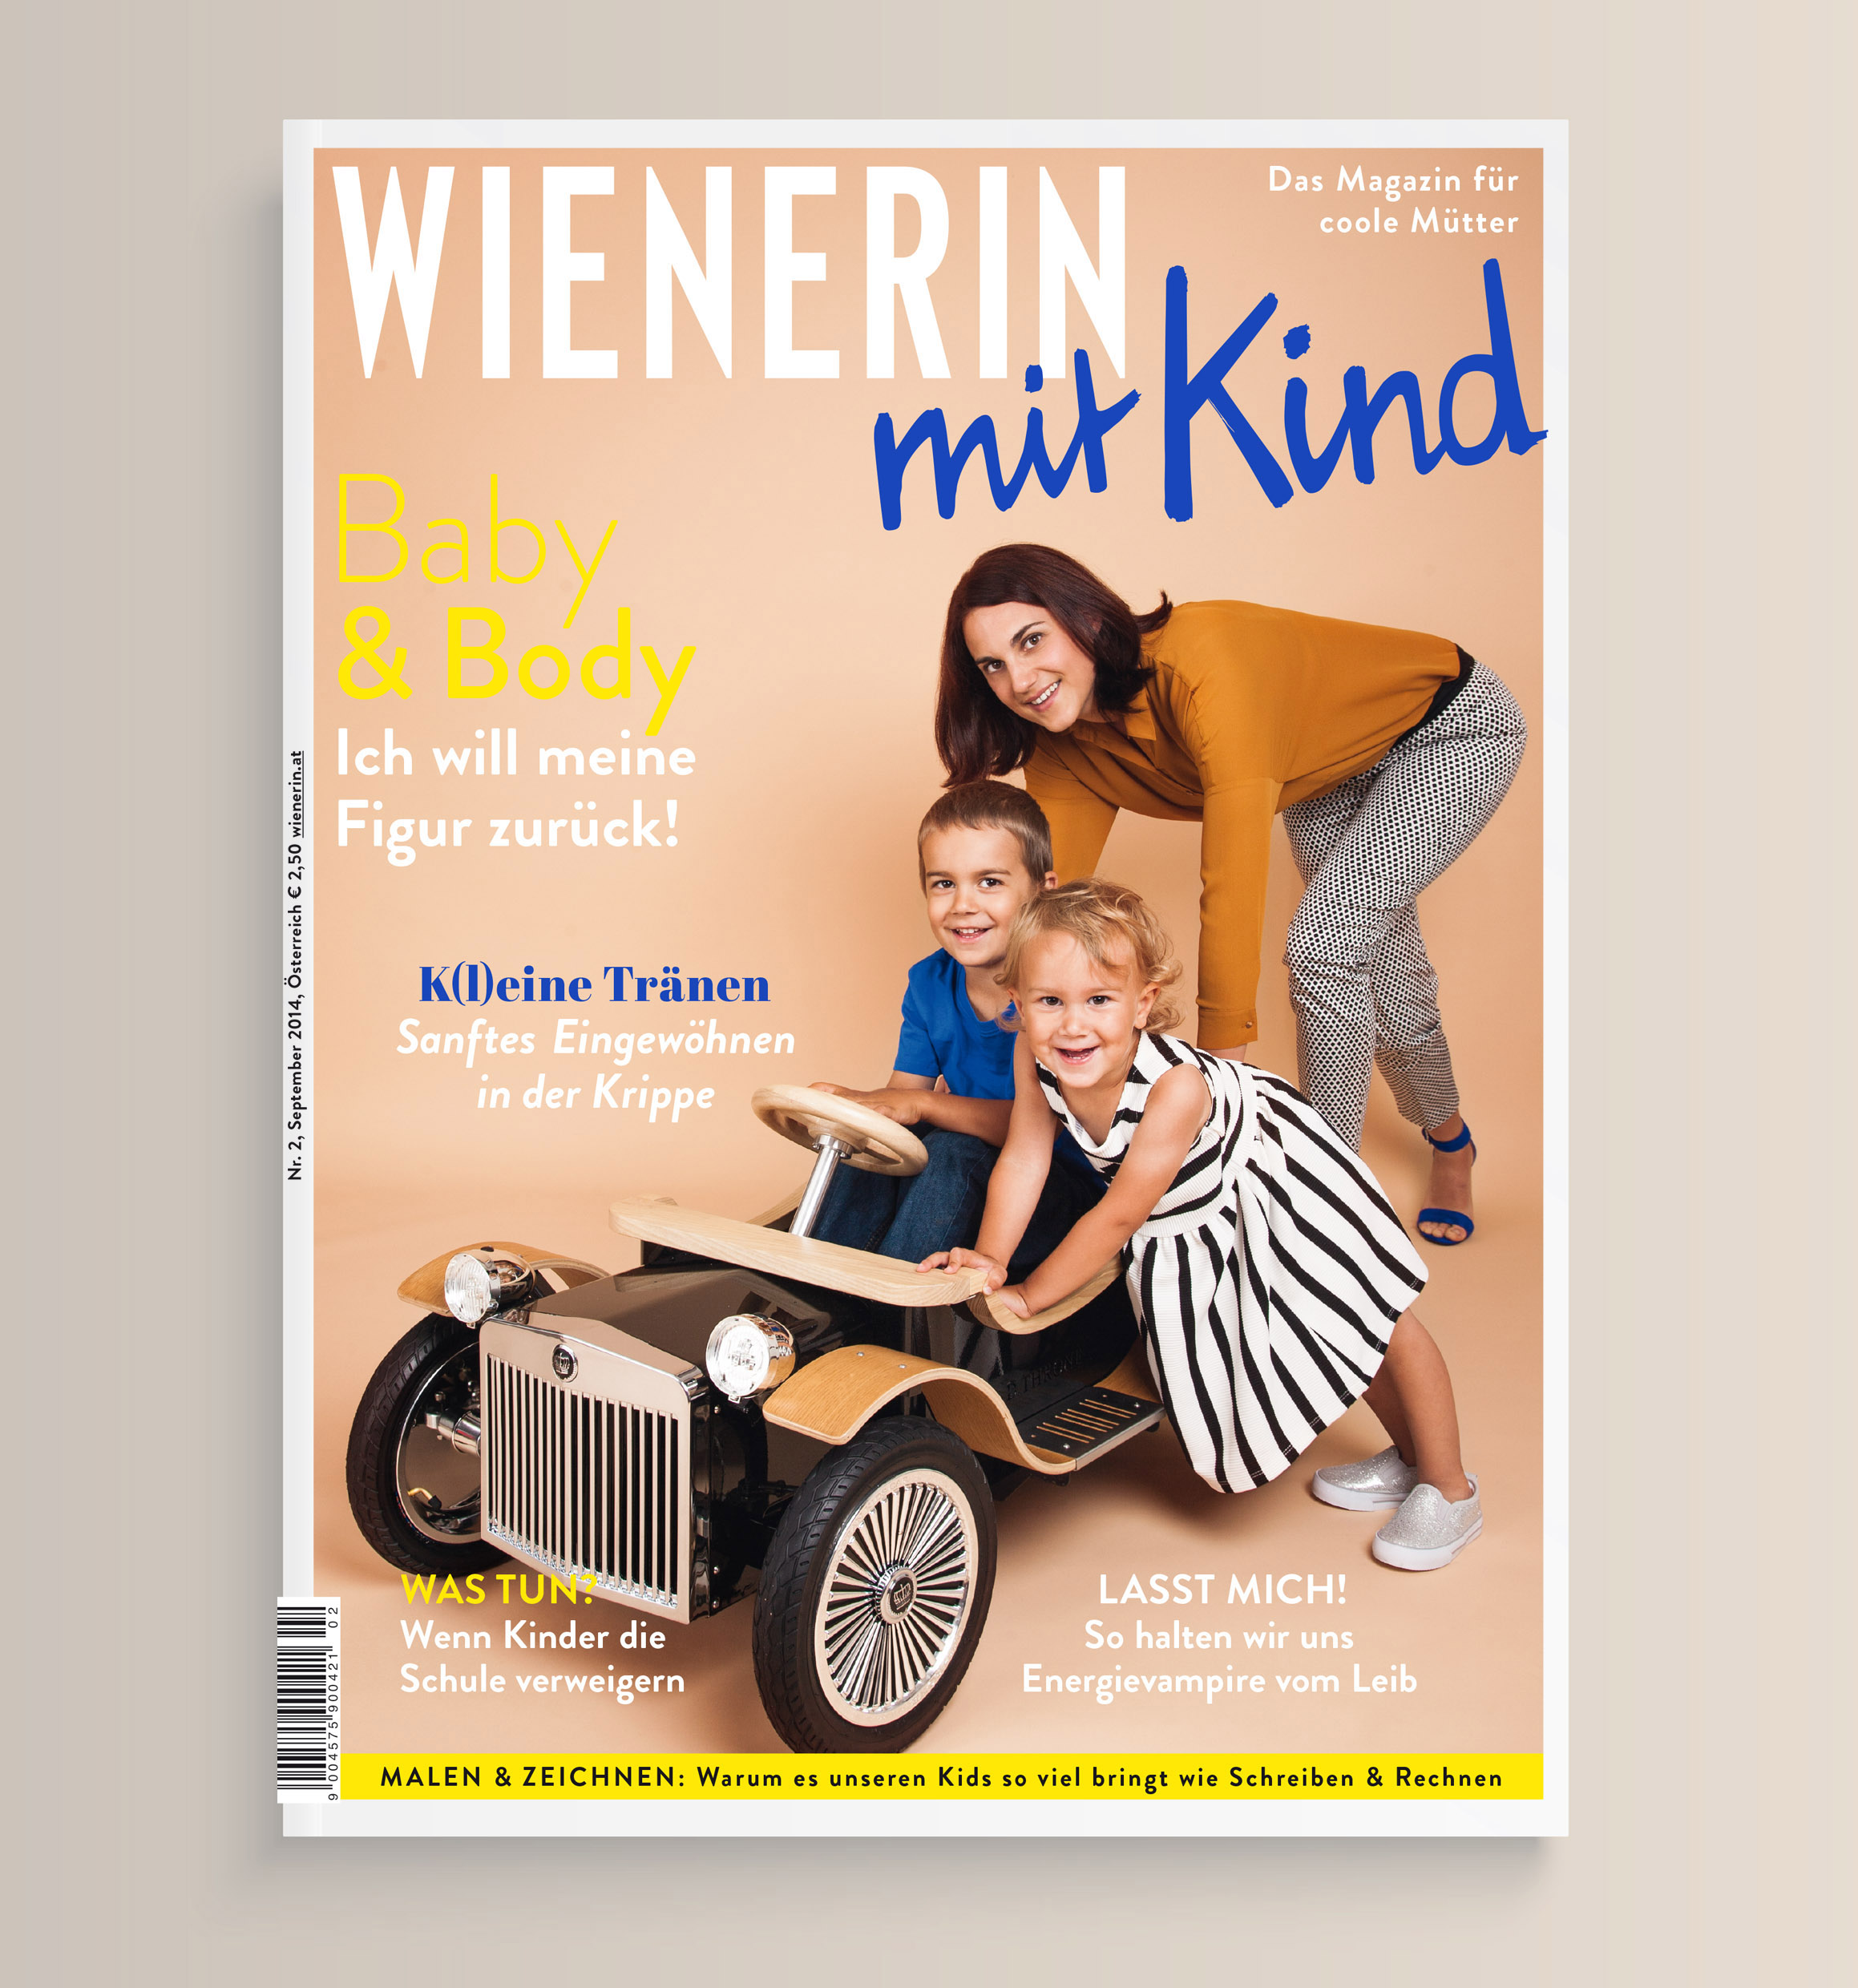 Grafikdesign Agentur Viktoria Platzer Editorial Design Wienerin mit Kind3